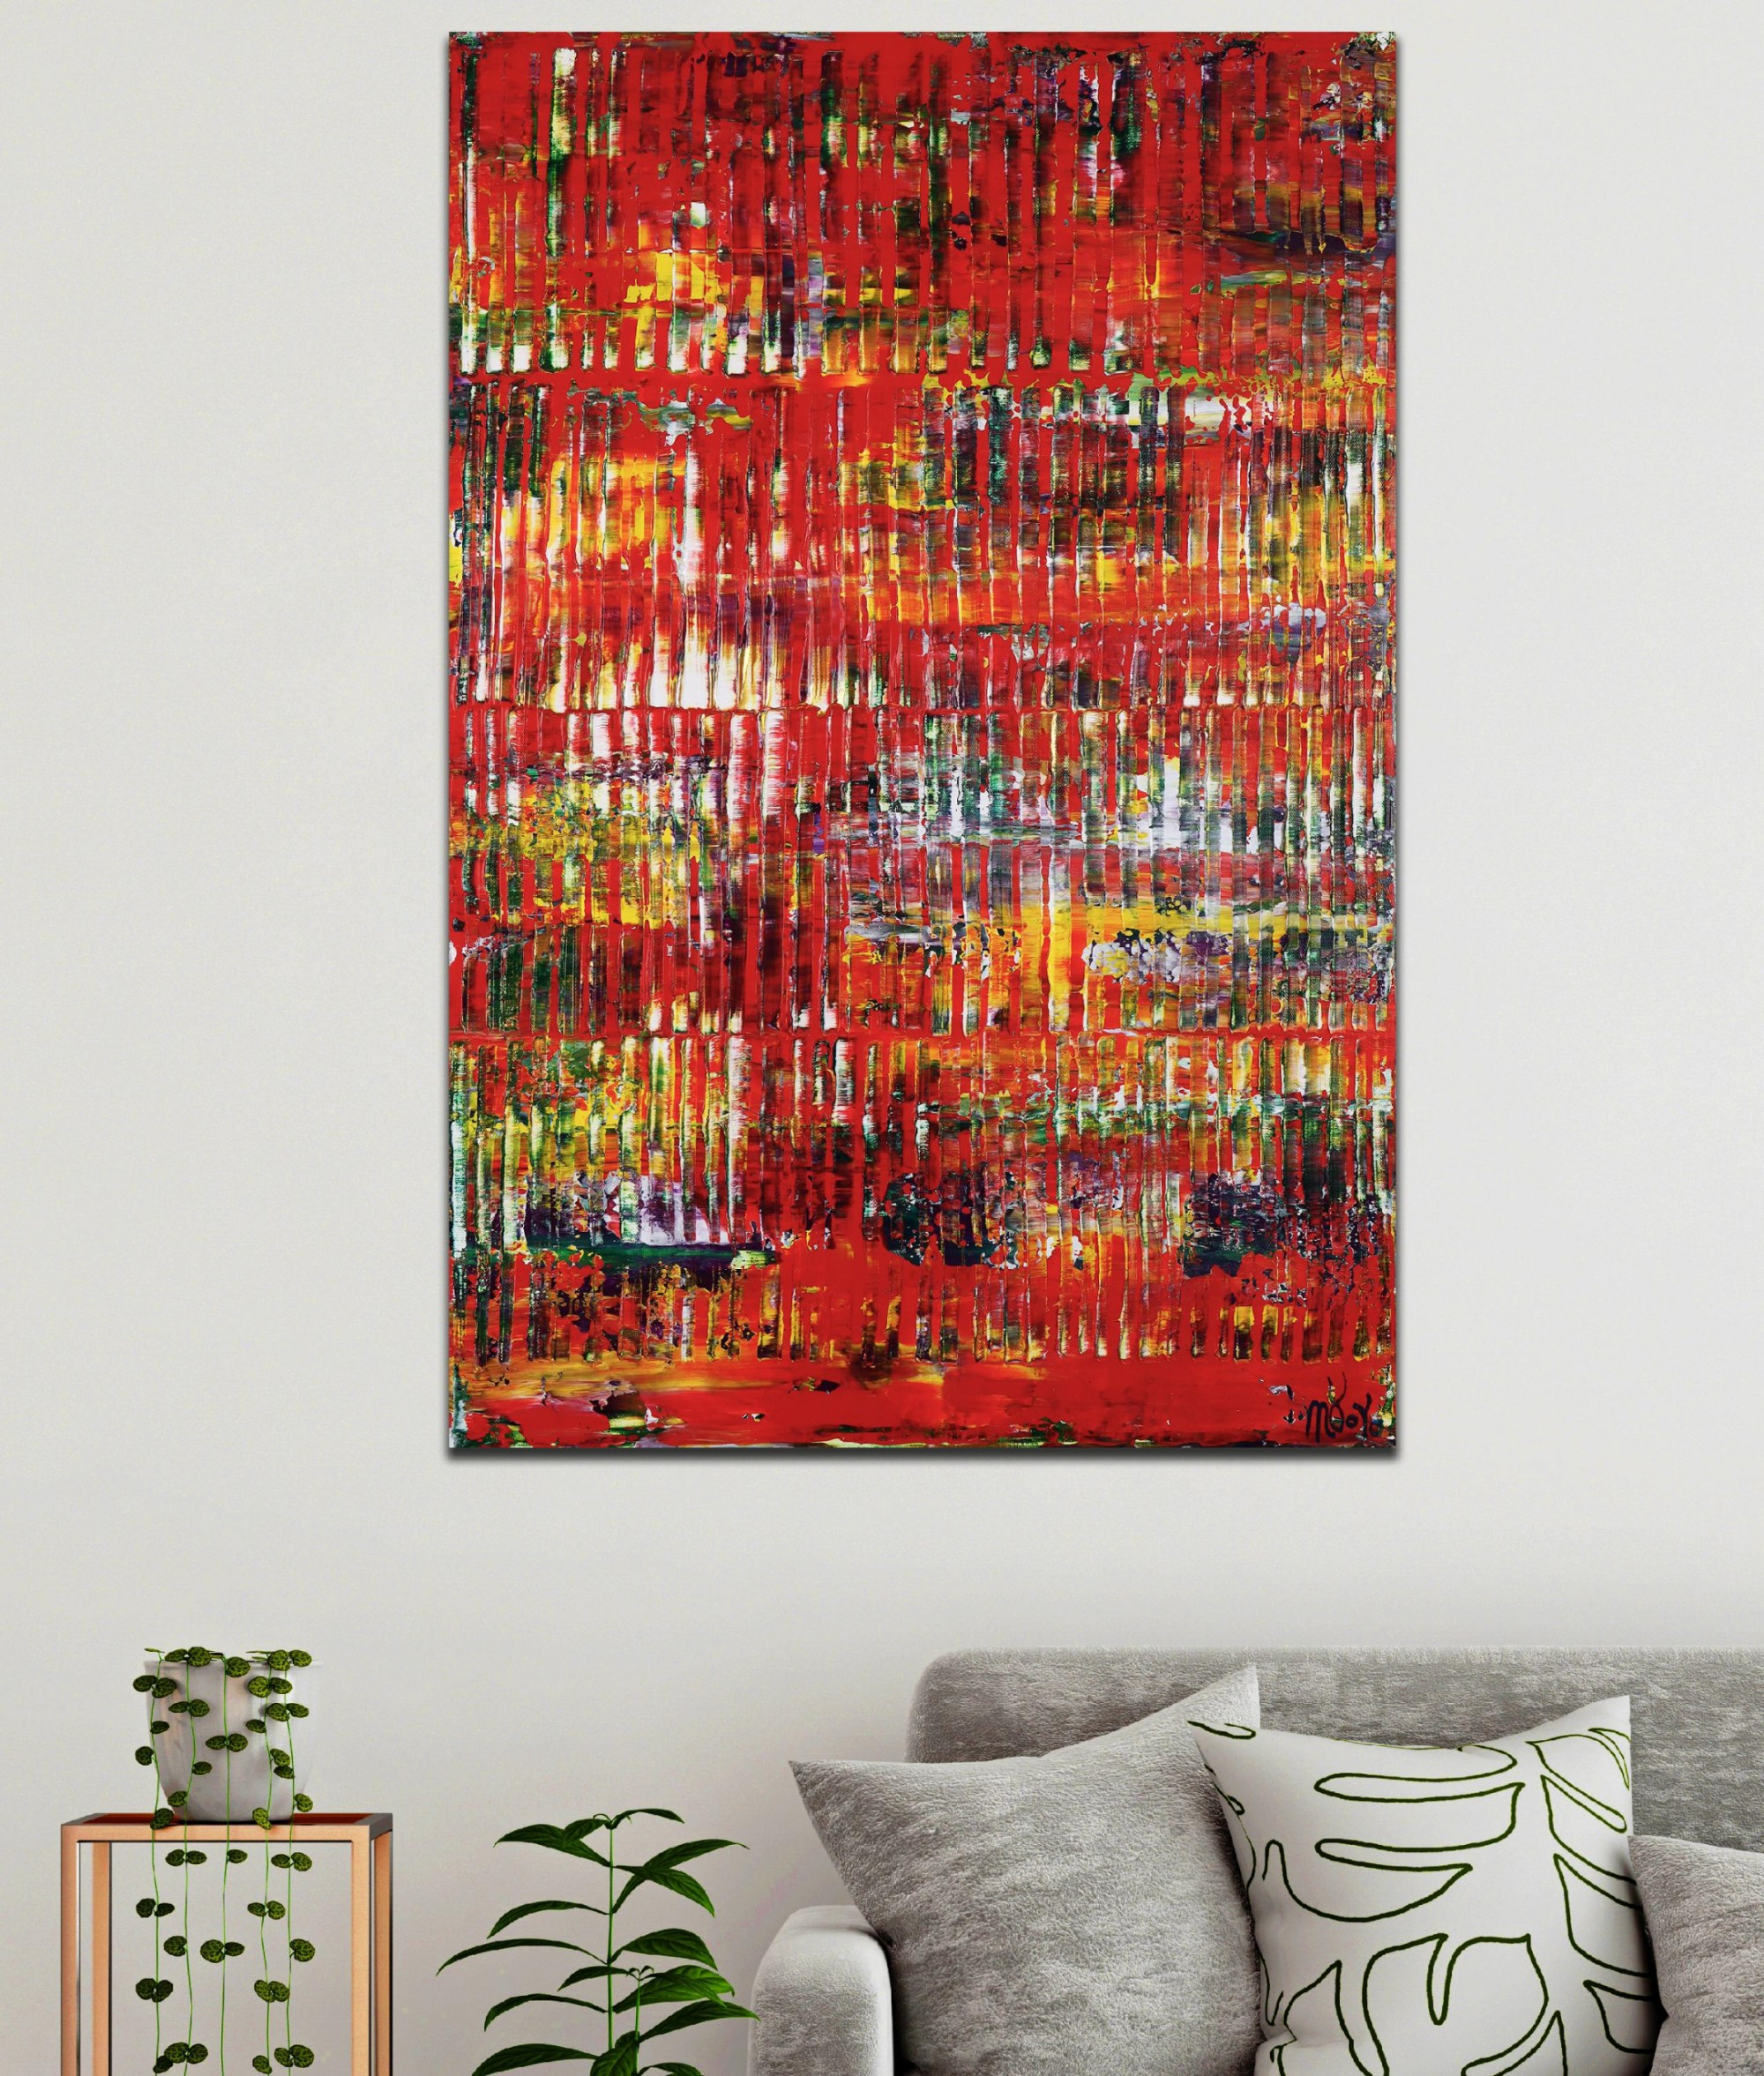 Infinitely Red (Color reunion) (2021) / 24x36 inches